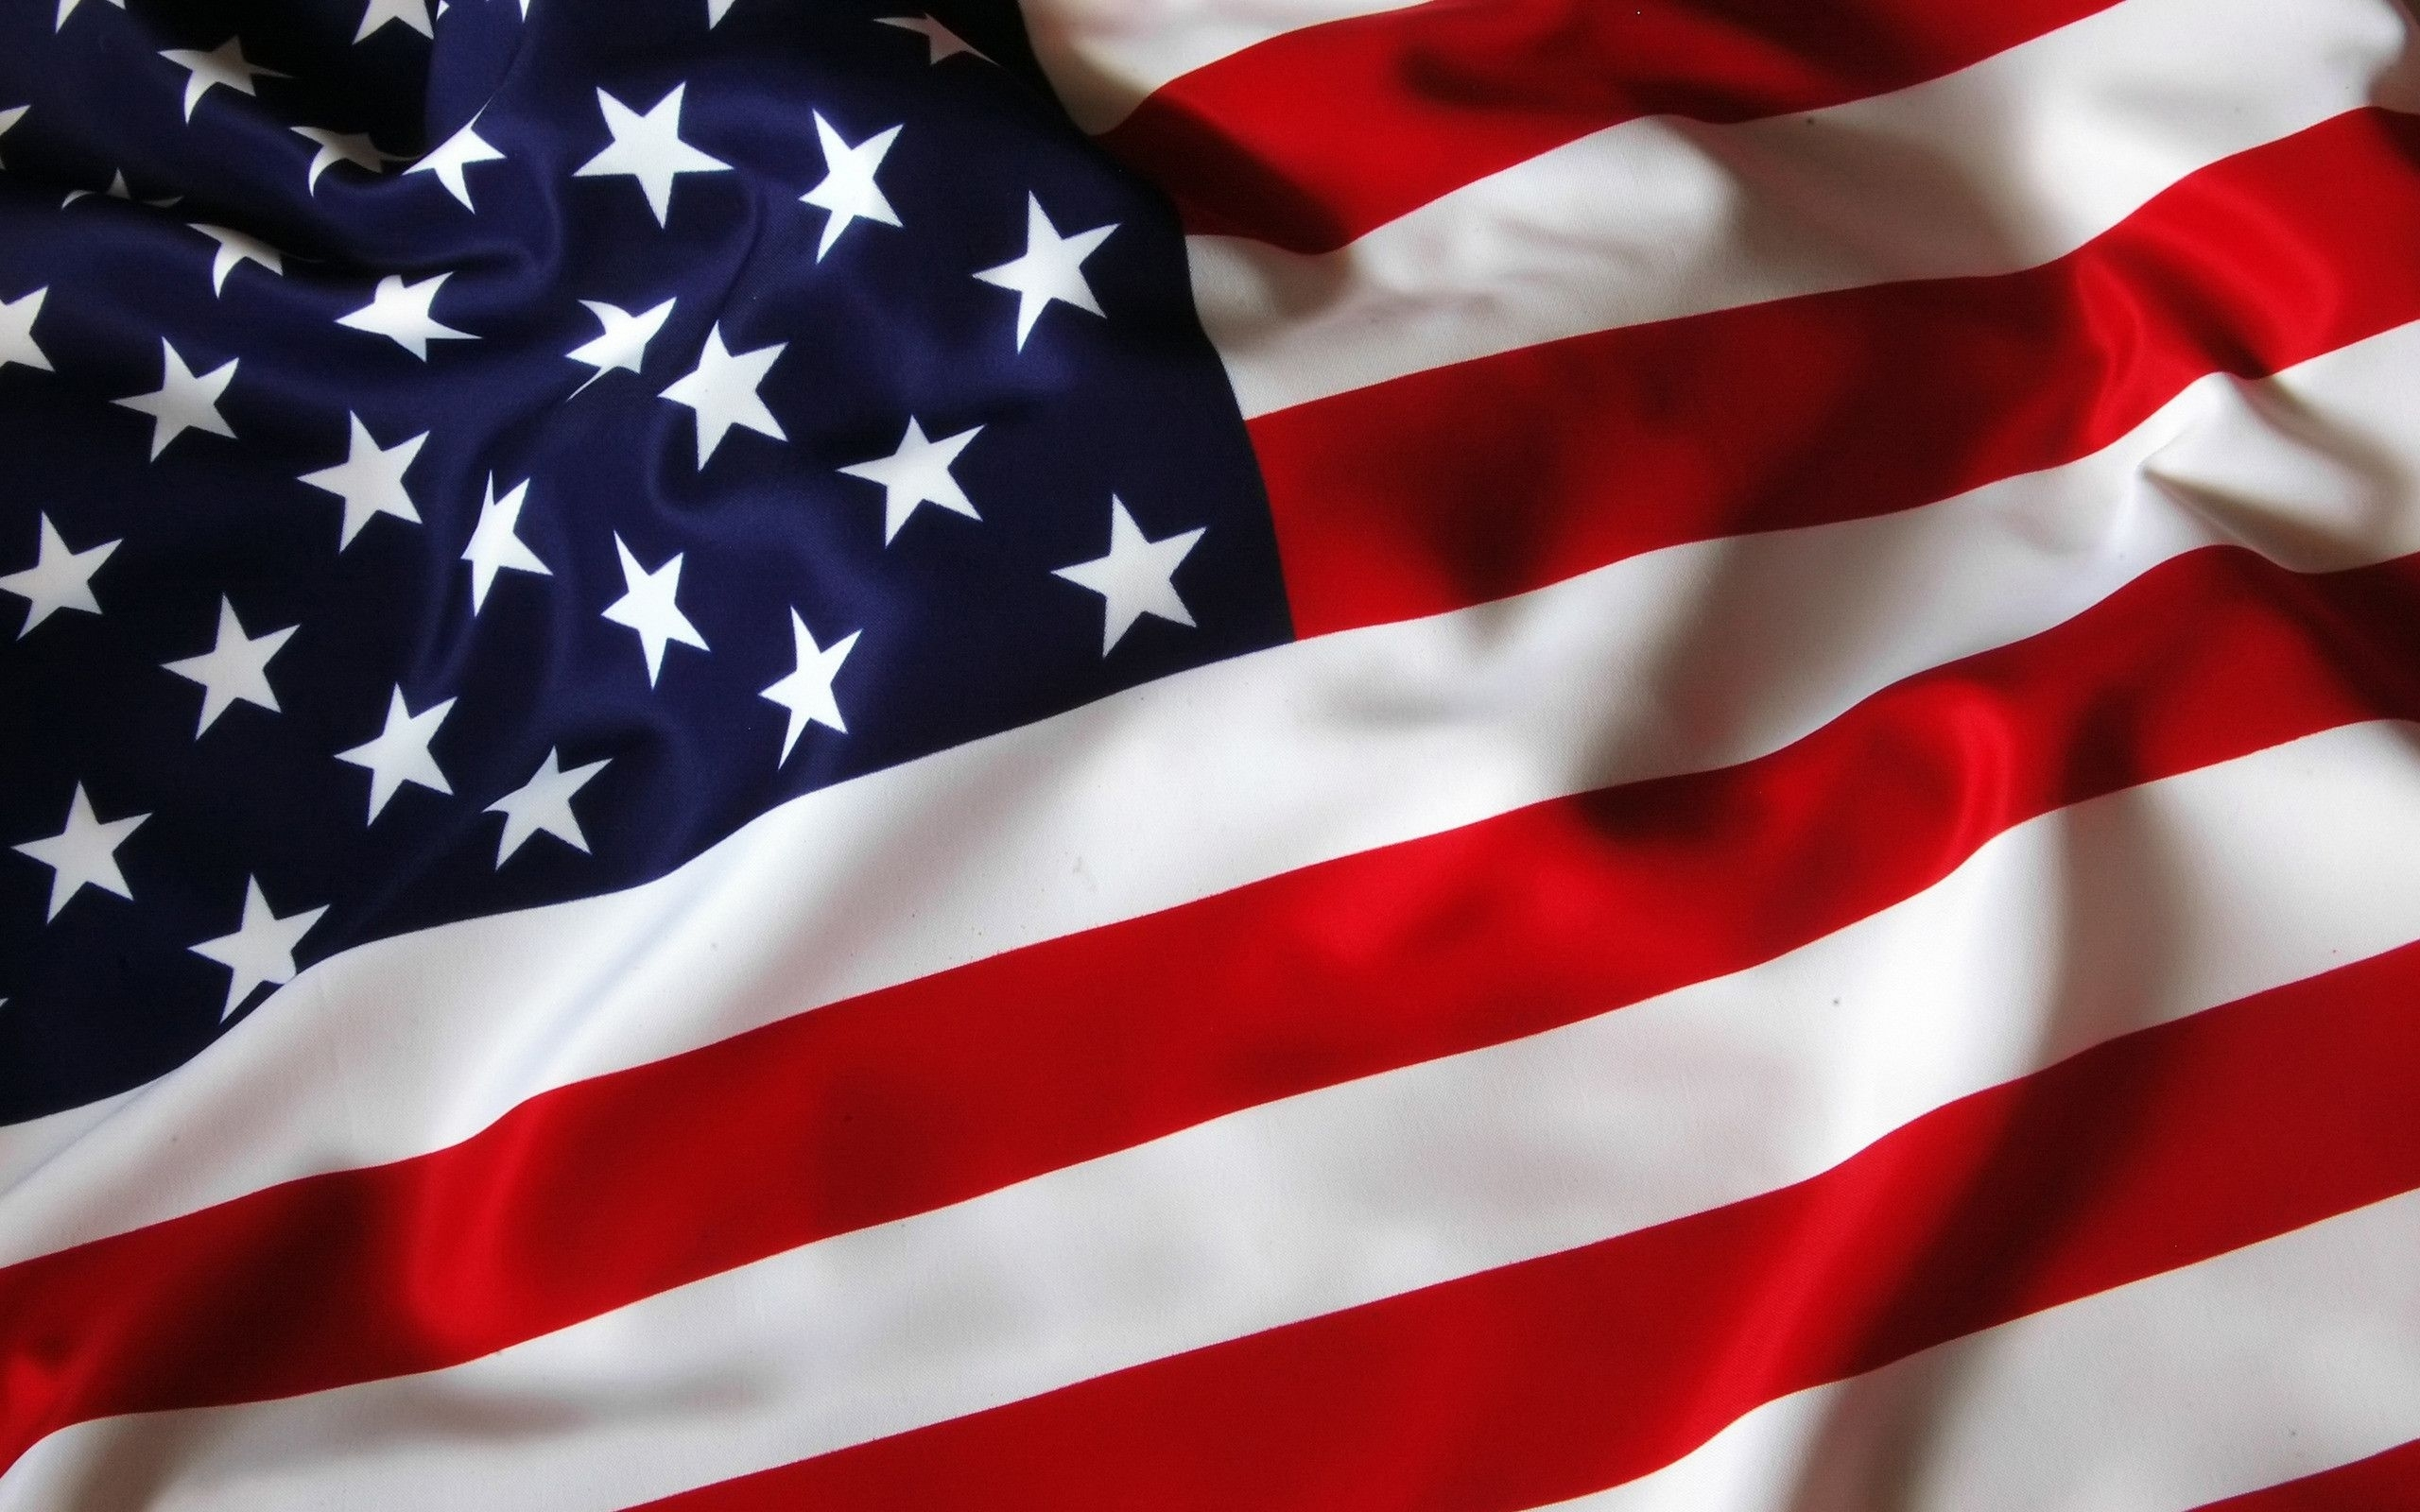 american flag computer wallpaper group with 55 items